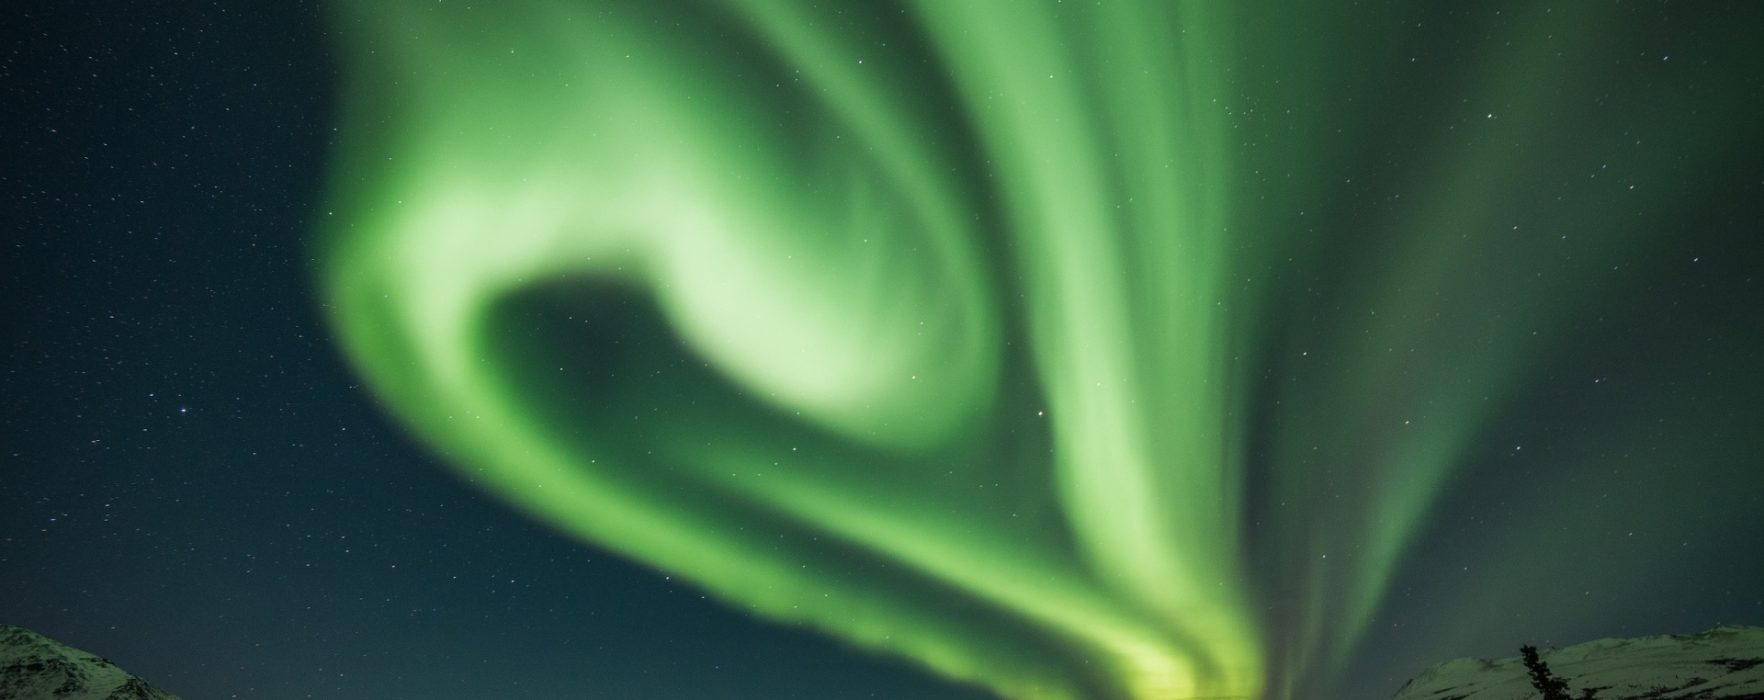 Seeing the Northern Lights tops the list of 50 most sought after travel experiences